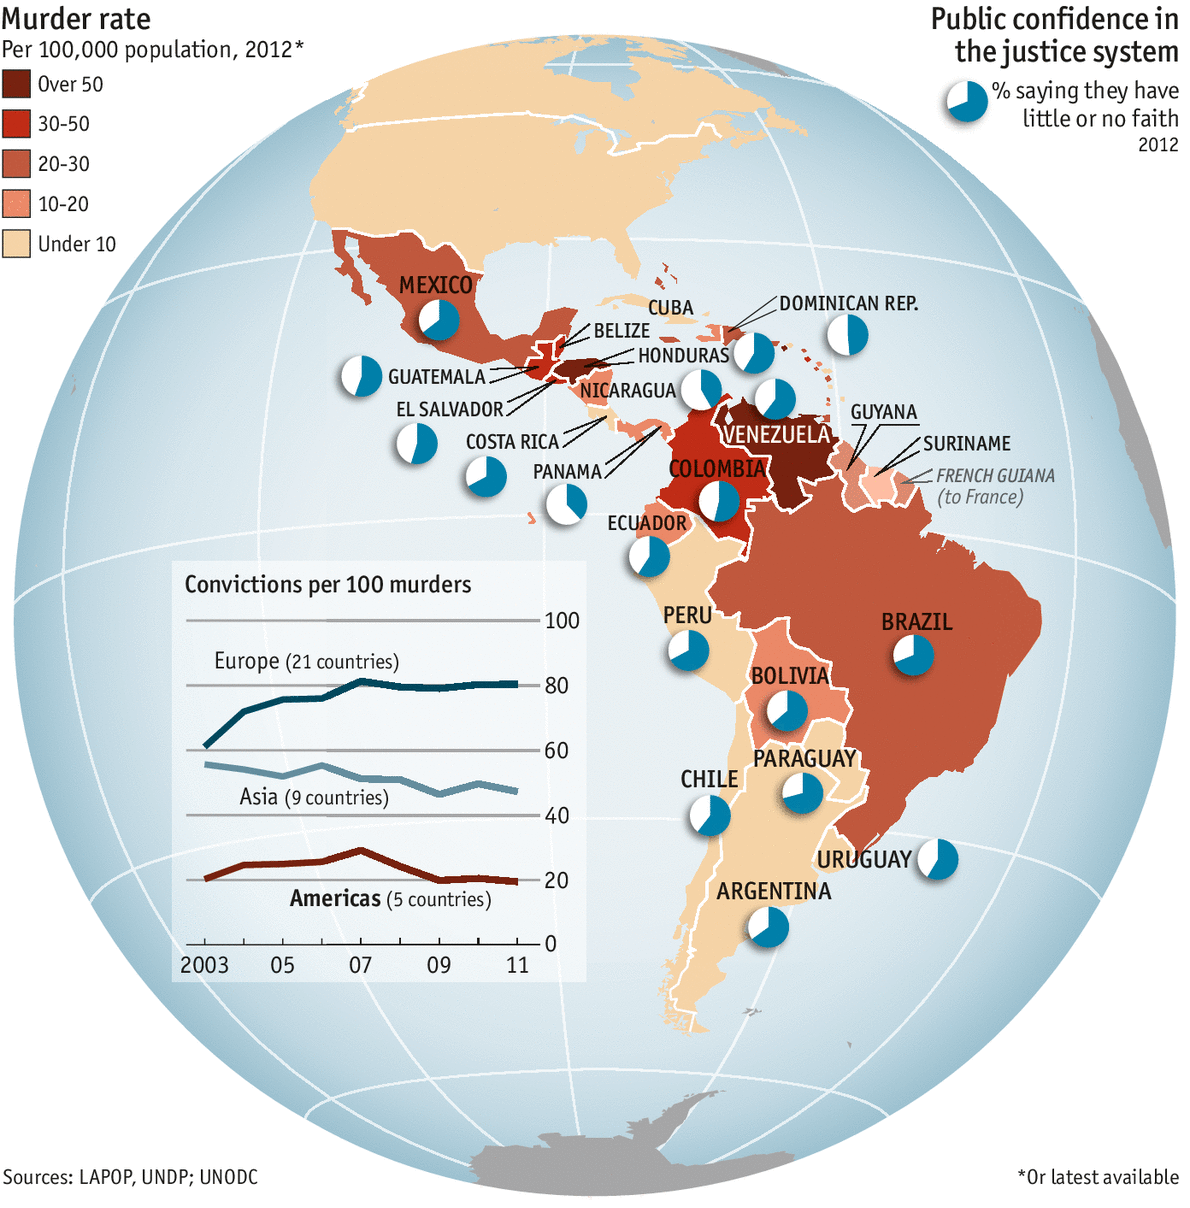 theeconomist :      A broken system : Latin America is the only region in the world where murder rates increased in the first decade of this century. Plenty of factors explain Latin America's crime disease. The drug trade, a bulge of young, poorly educated men, income inequality and access to firearms are some. But perhaps the most important is the pervasive weakness in the basic institutions of the rule of law. As our map shows, trust in the criminal-justice system remains  low in all countries .     Interesting data visualization, although the little pie charts (which I am never a fan of) leave something to be desired. I  assume  the blue wedge is the one we're interested in but if I were a cynical reader of charts (read: I am) I might wonder if the white were actually the representative wedge, meant to be ambiguous or misleading. The legend is not actually helpful in this case. For the amount of space the pie charts take up, I would just label the countries with the percentage itself.   To summarize: pie charts are basically never the right way to go. Otherwise, very well-packed visualization.